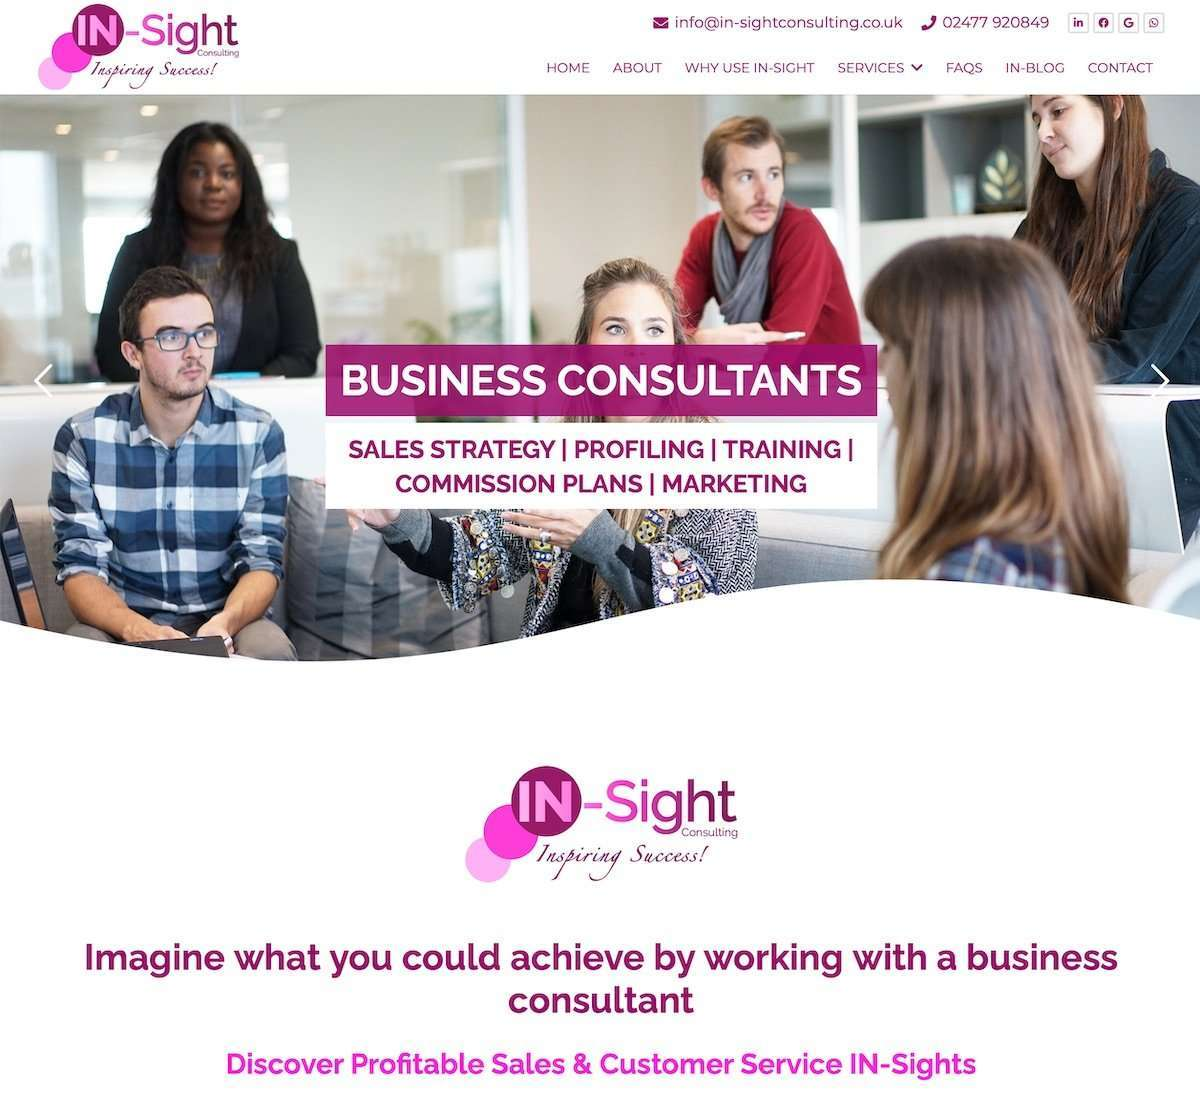 IN-Sight Consulting - Sales & Marketing Consultant Website